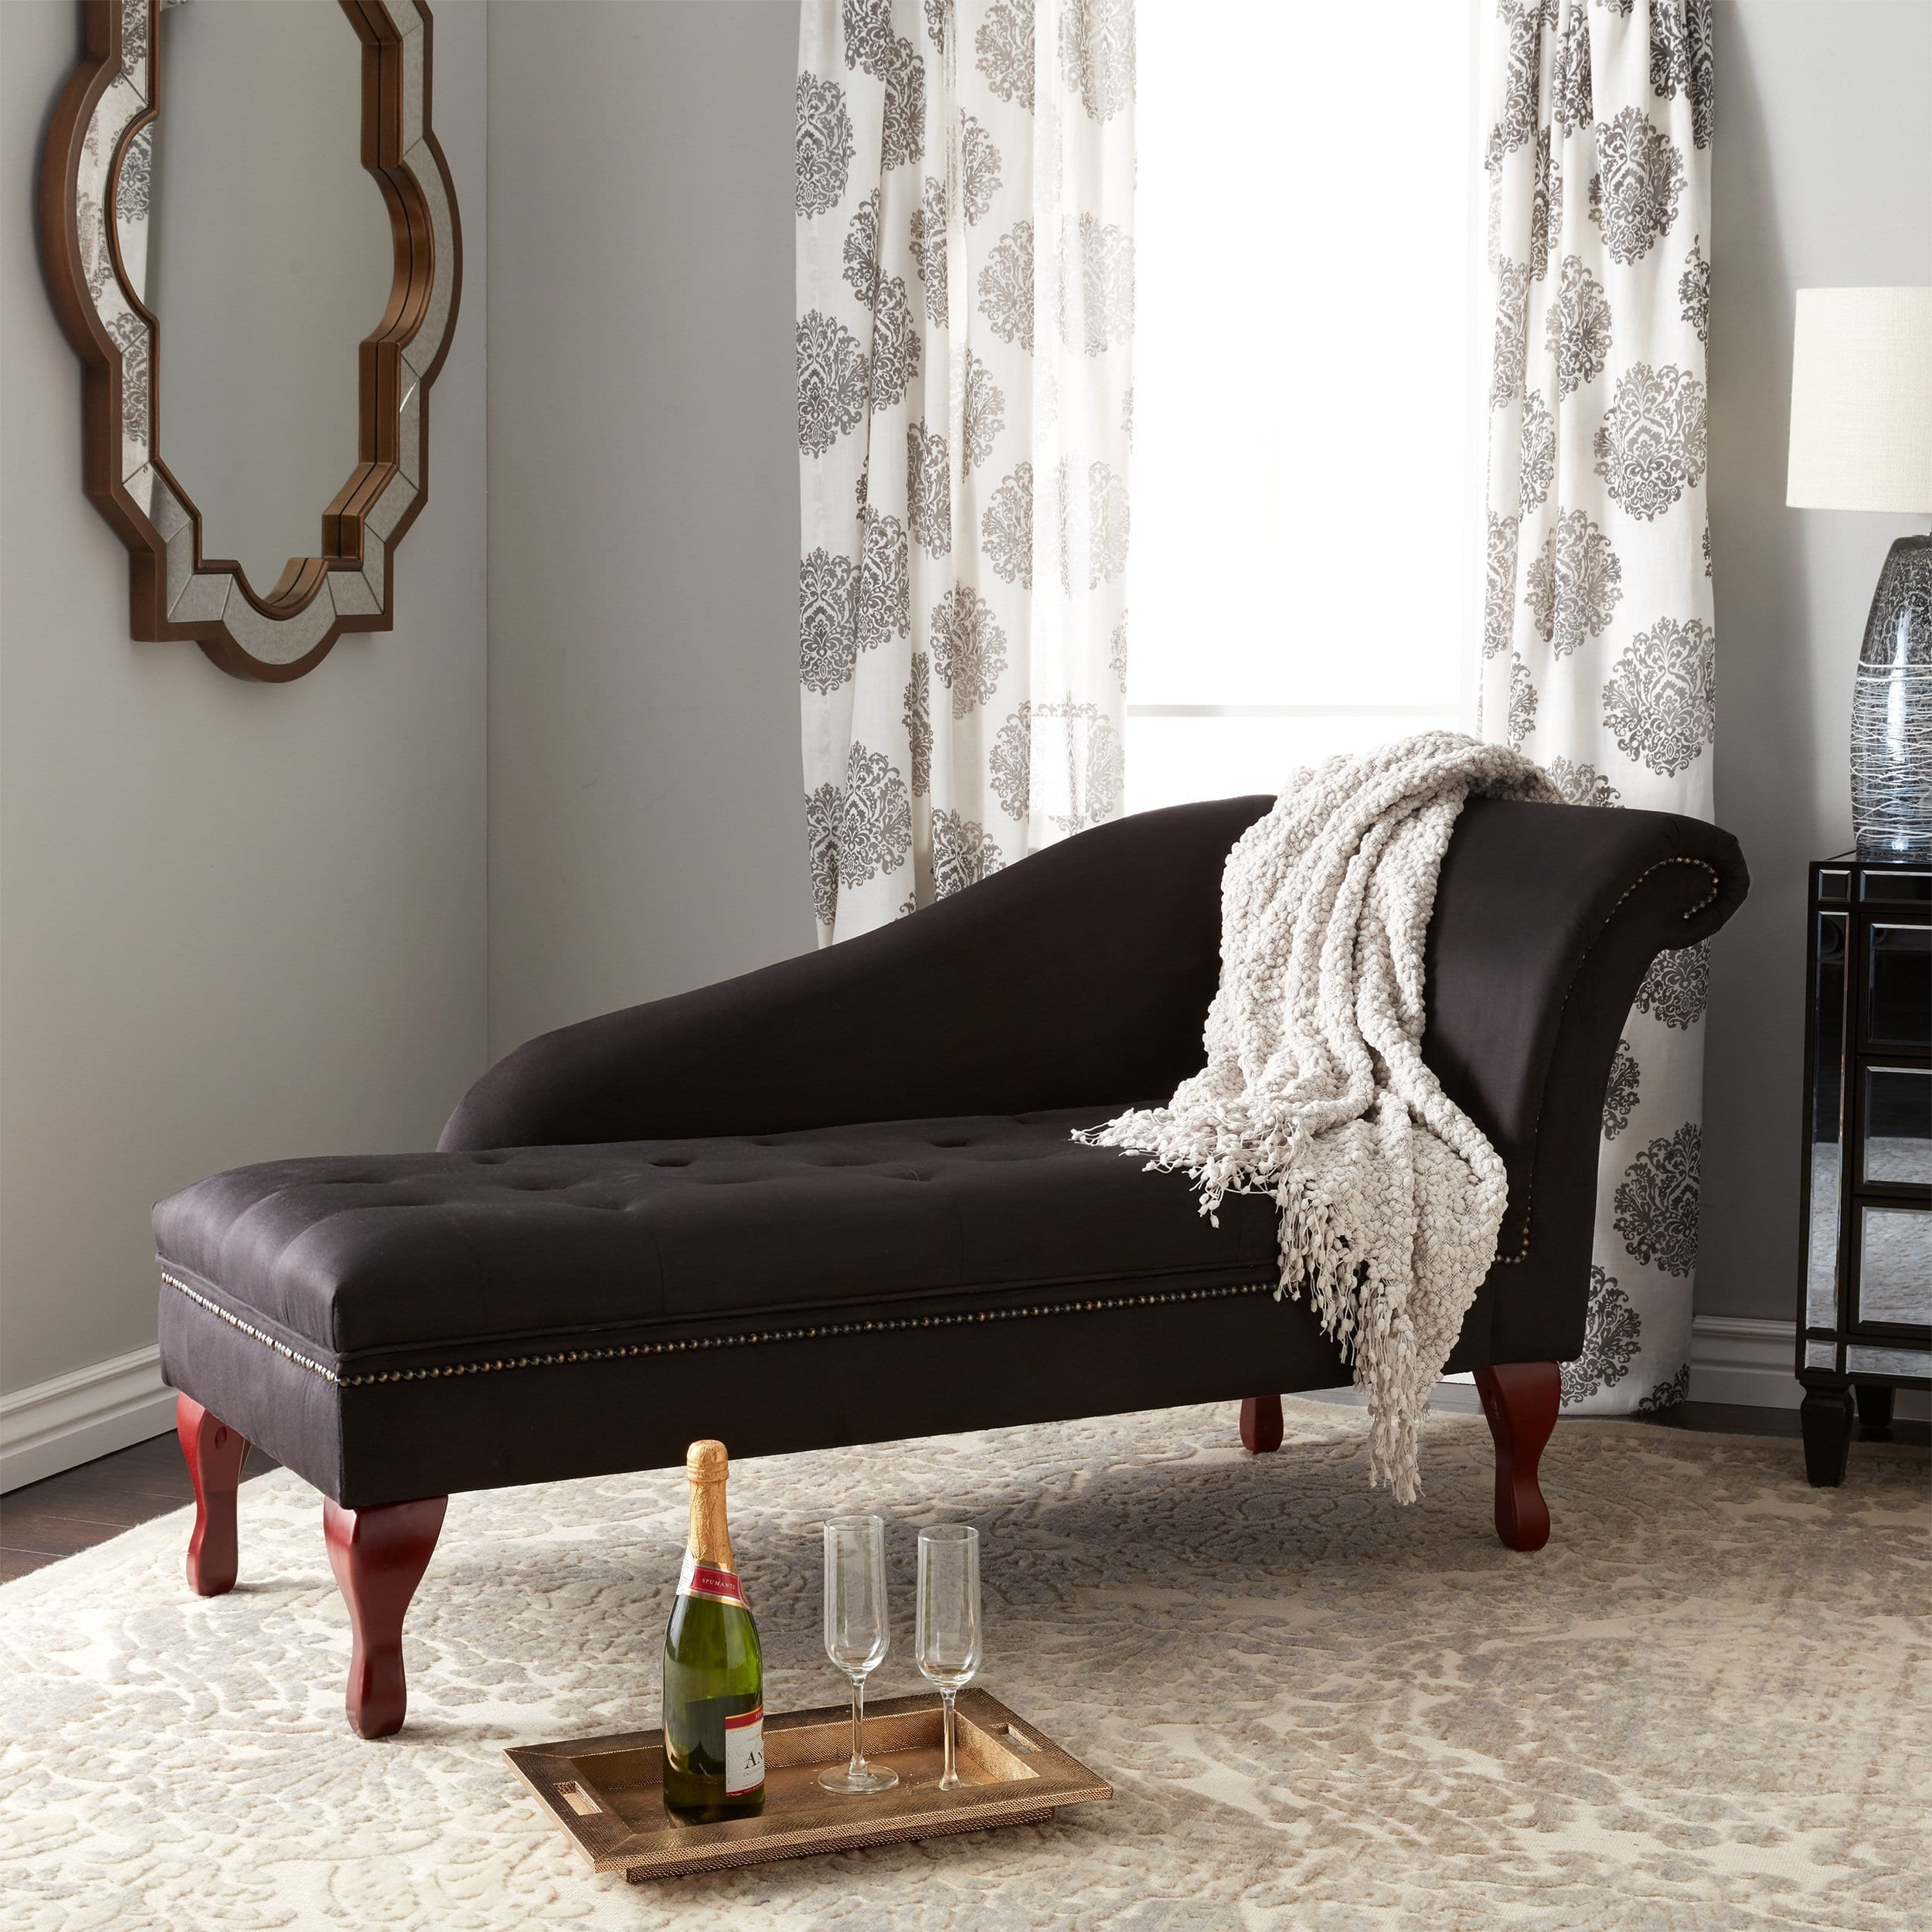 Comfortable Living Room Chaise Lounge Lovely New fortable Modern Classic Simple Living Black Storage Chaise Stylish Lounge